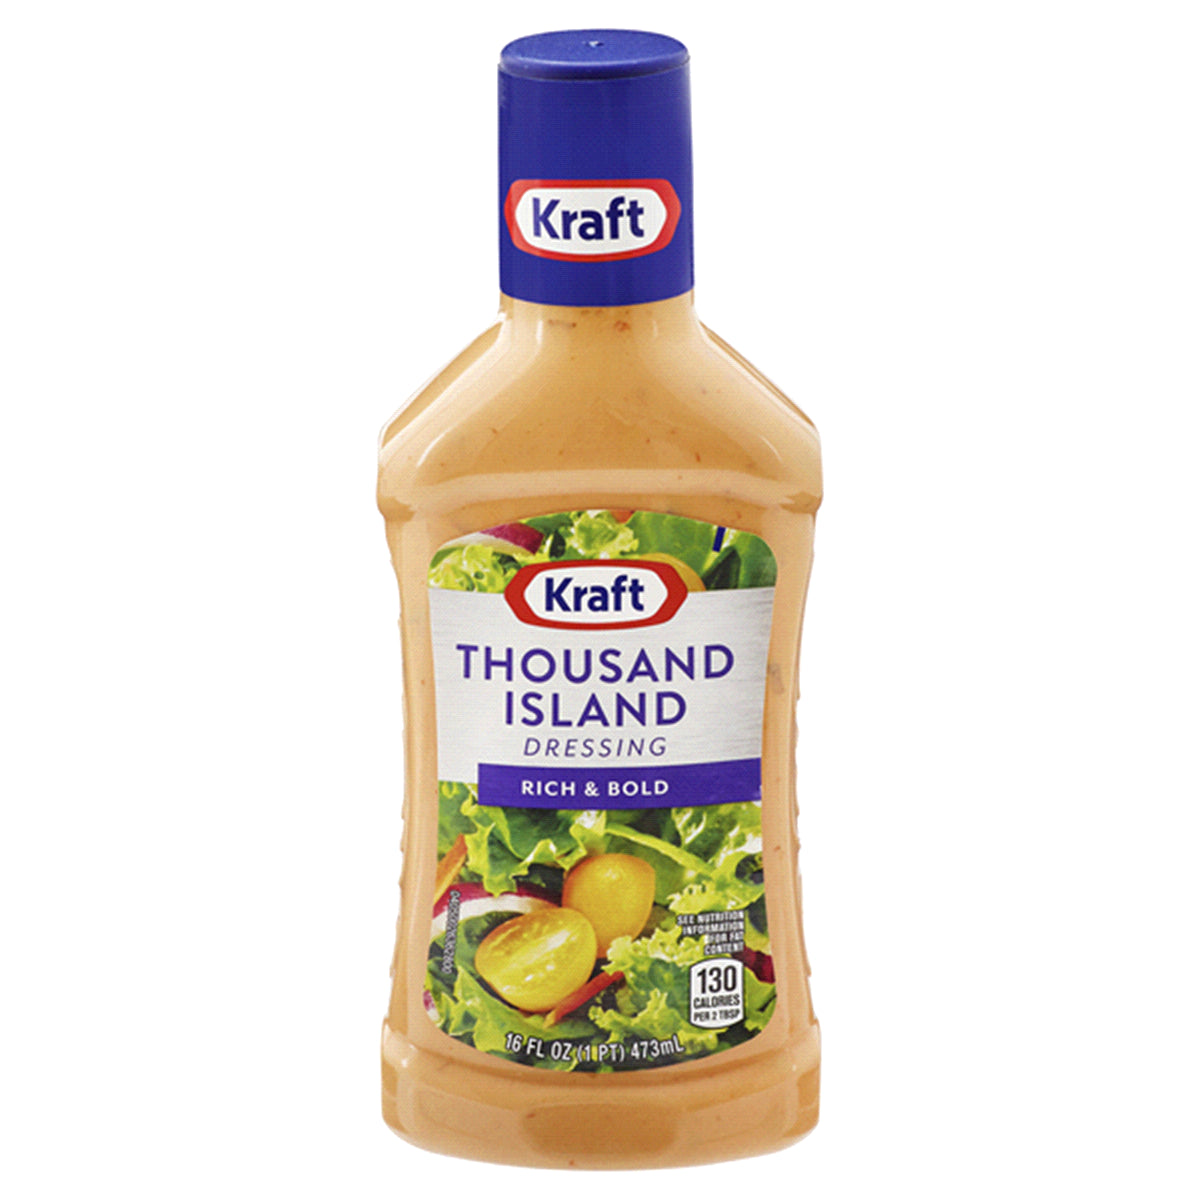 stl>Kraft Thousand Island Dressing - 16oz